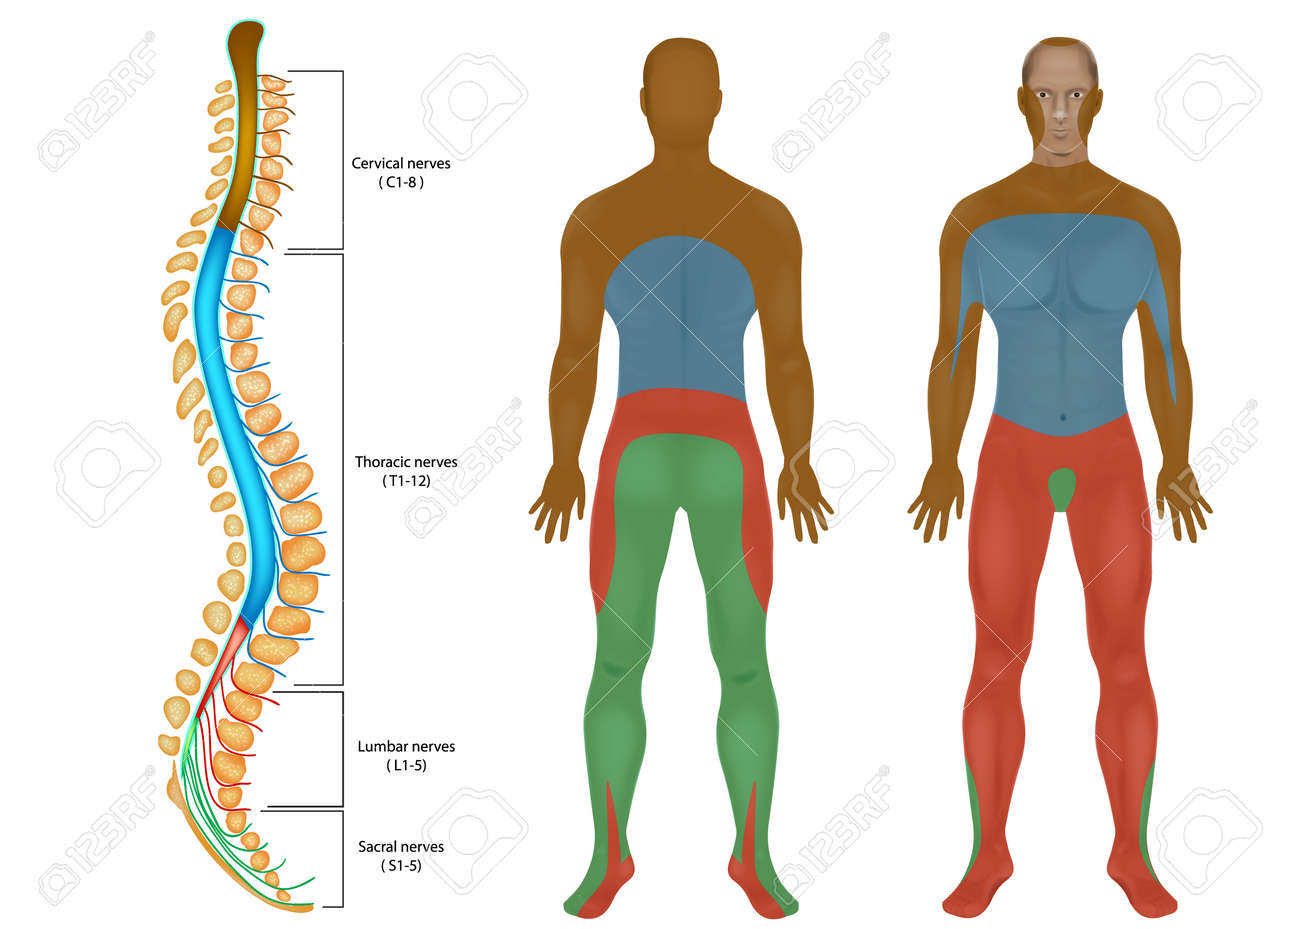 Spinal nerves chart spinal cord peripheral nervous system